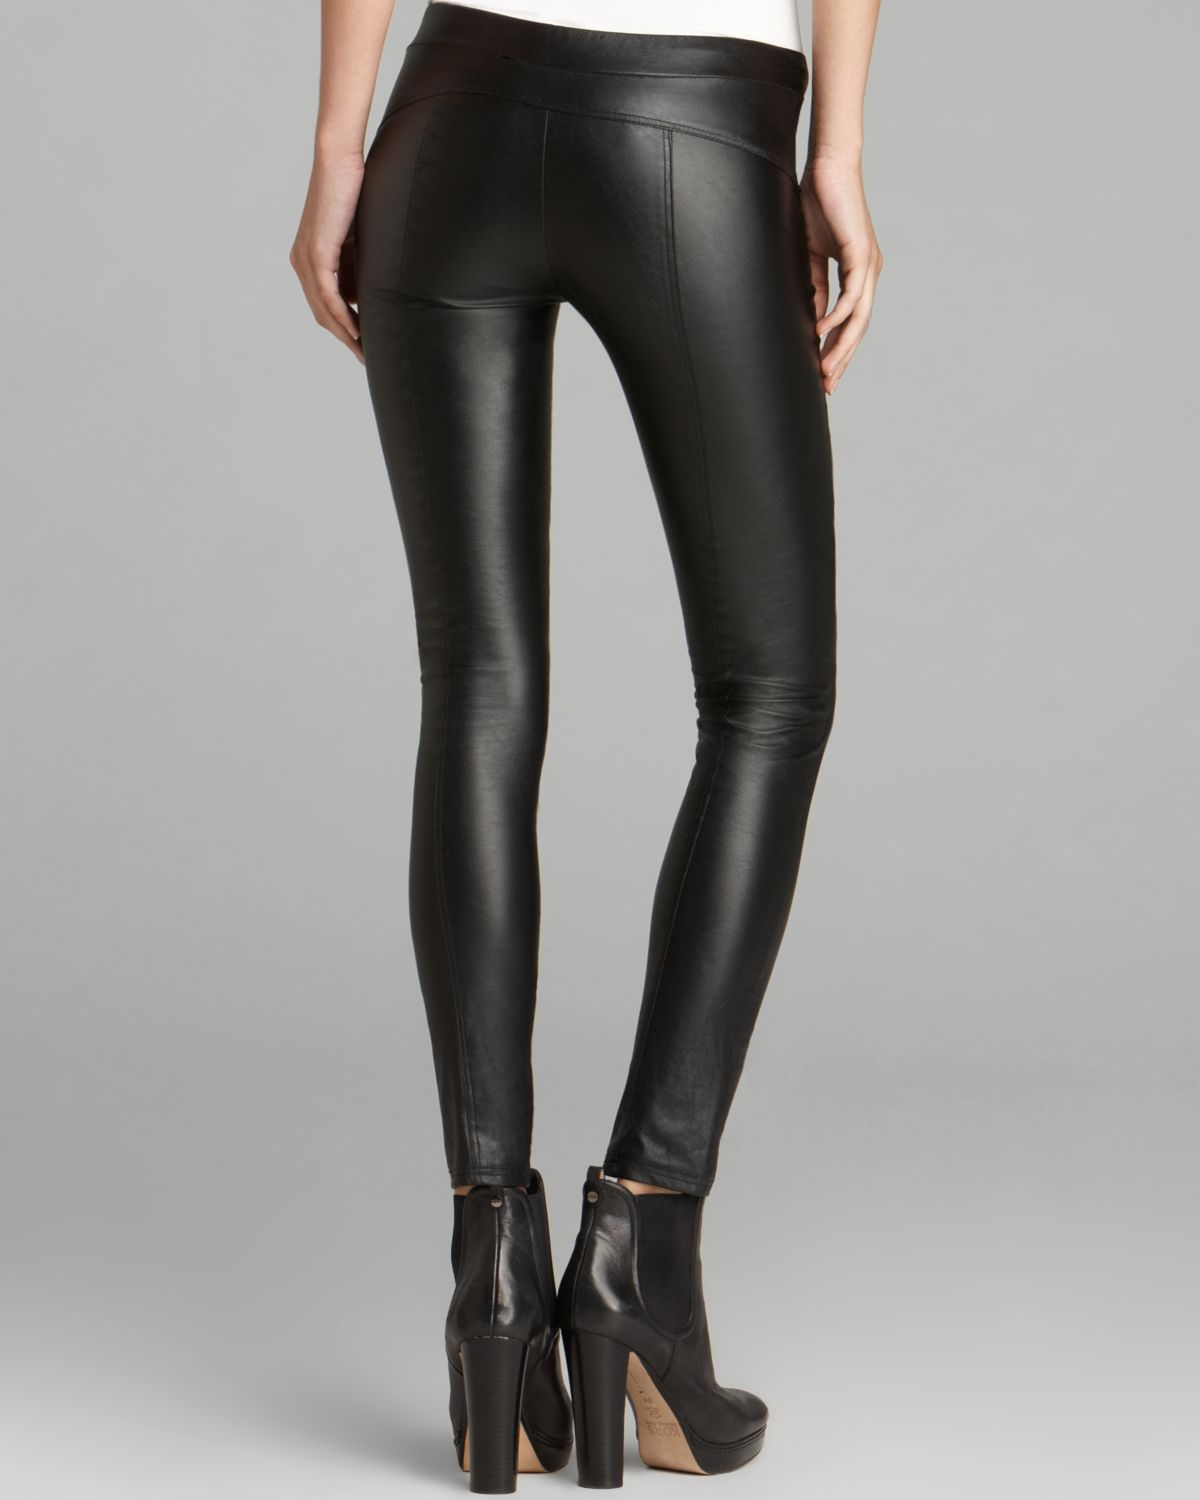 00e88ade85e41 Gallery. Previously sold at: Bloomingdale's · Women's Faux Leather Pants  Women's Leather Leggings